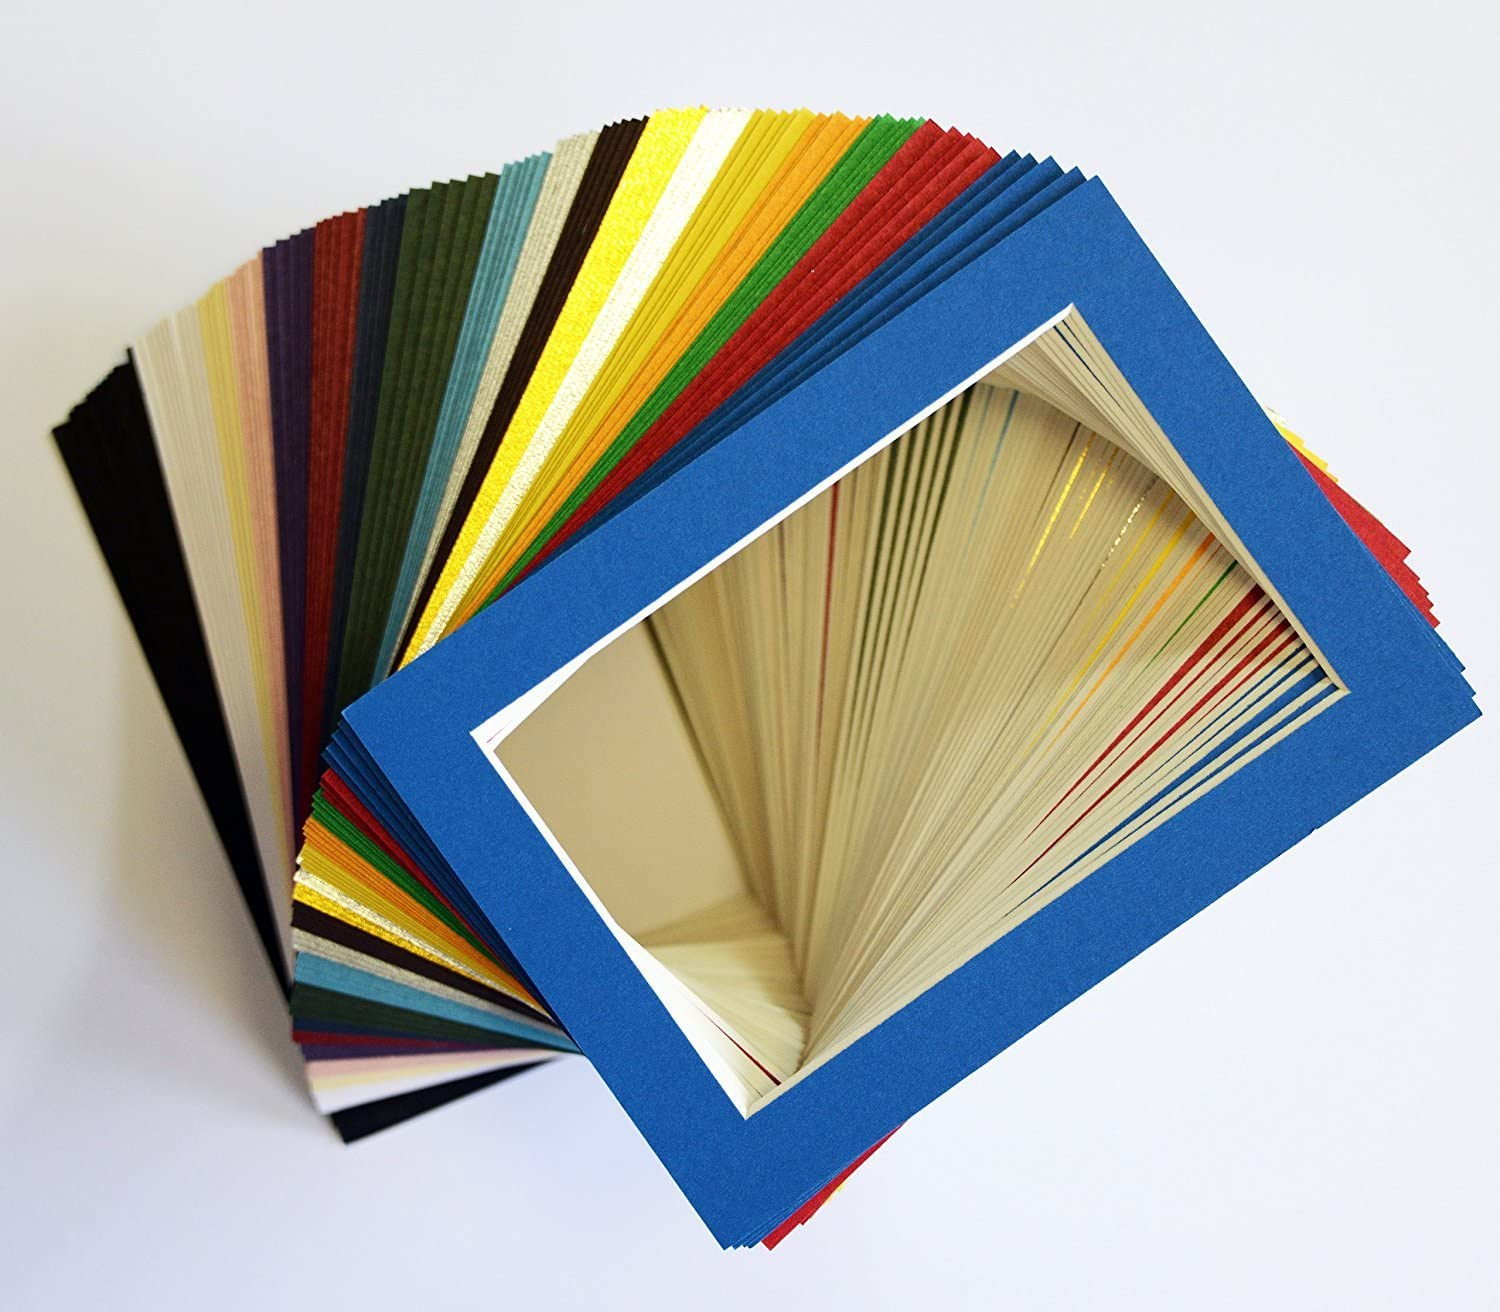 Pack of 100 sets of 5x7 MIXED COLORS Picture Mats Mattes Matting for 4x6 Photo Backing Bags